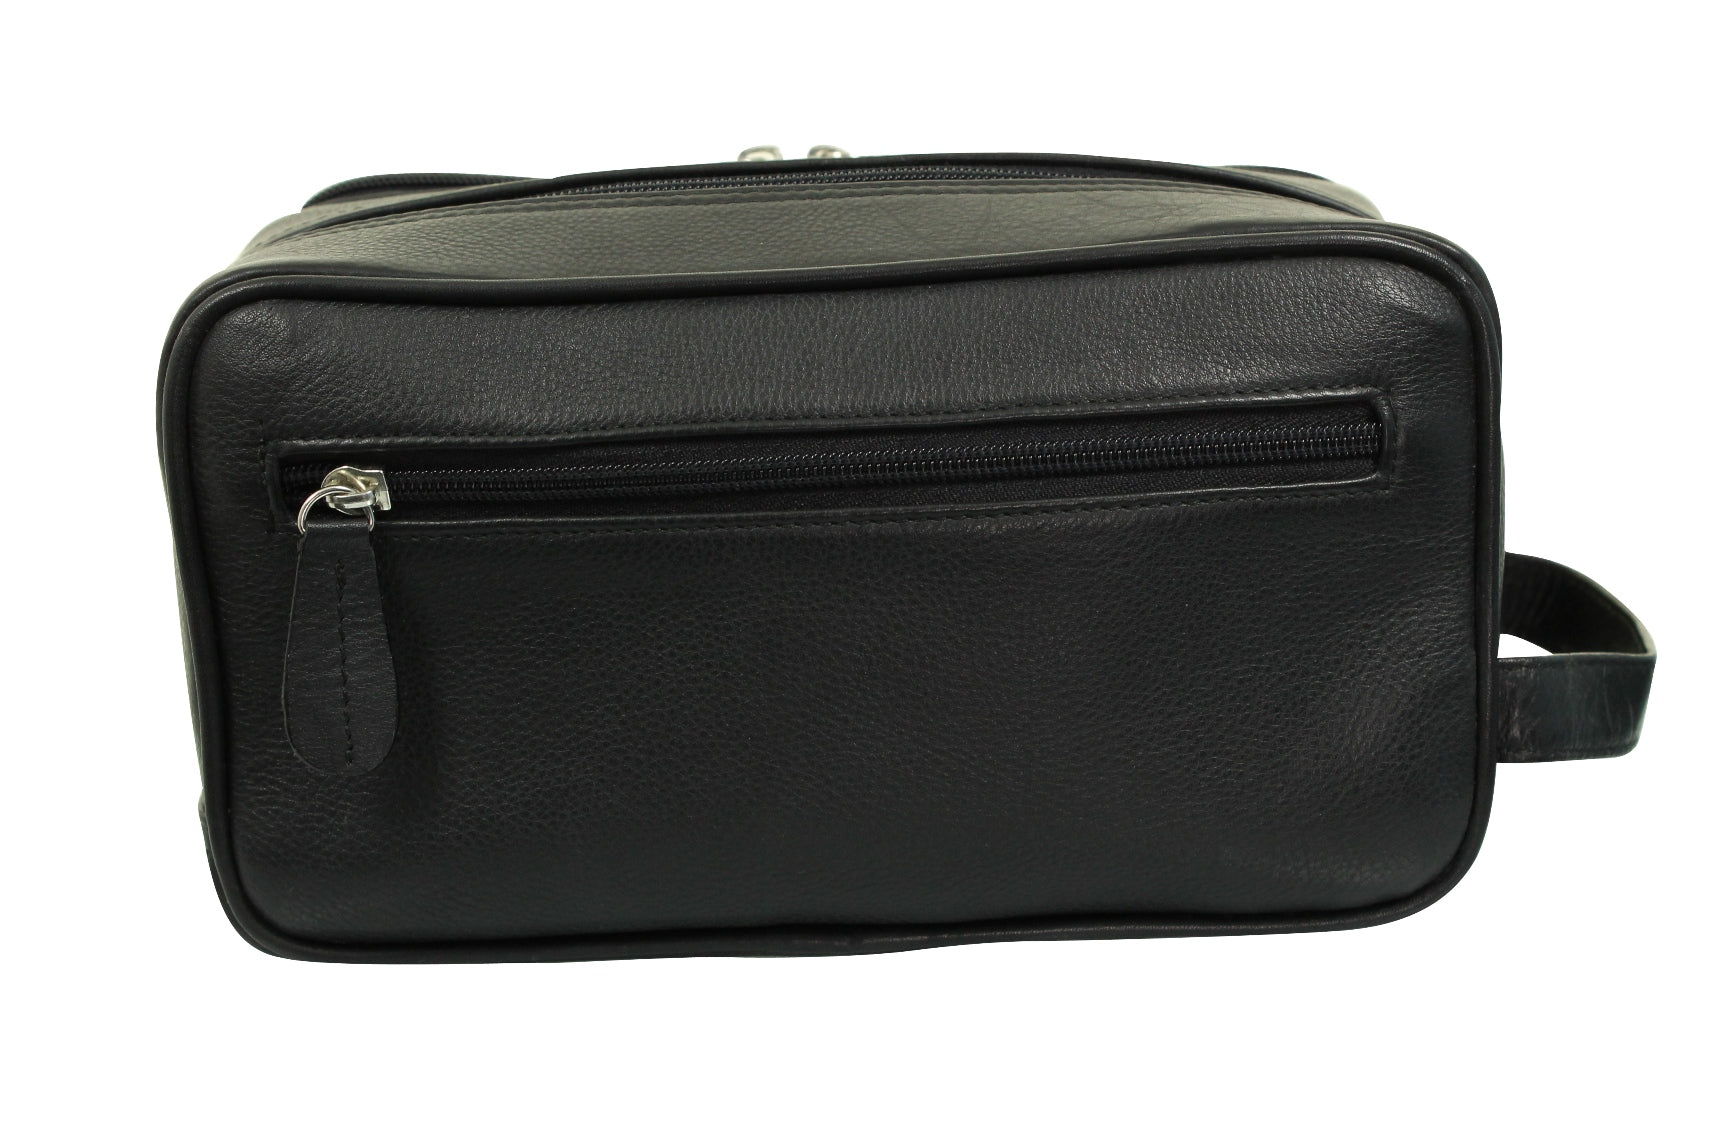 Real Leather Toiletry Wash Bag by Xact Clothing (Black)-3